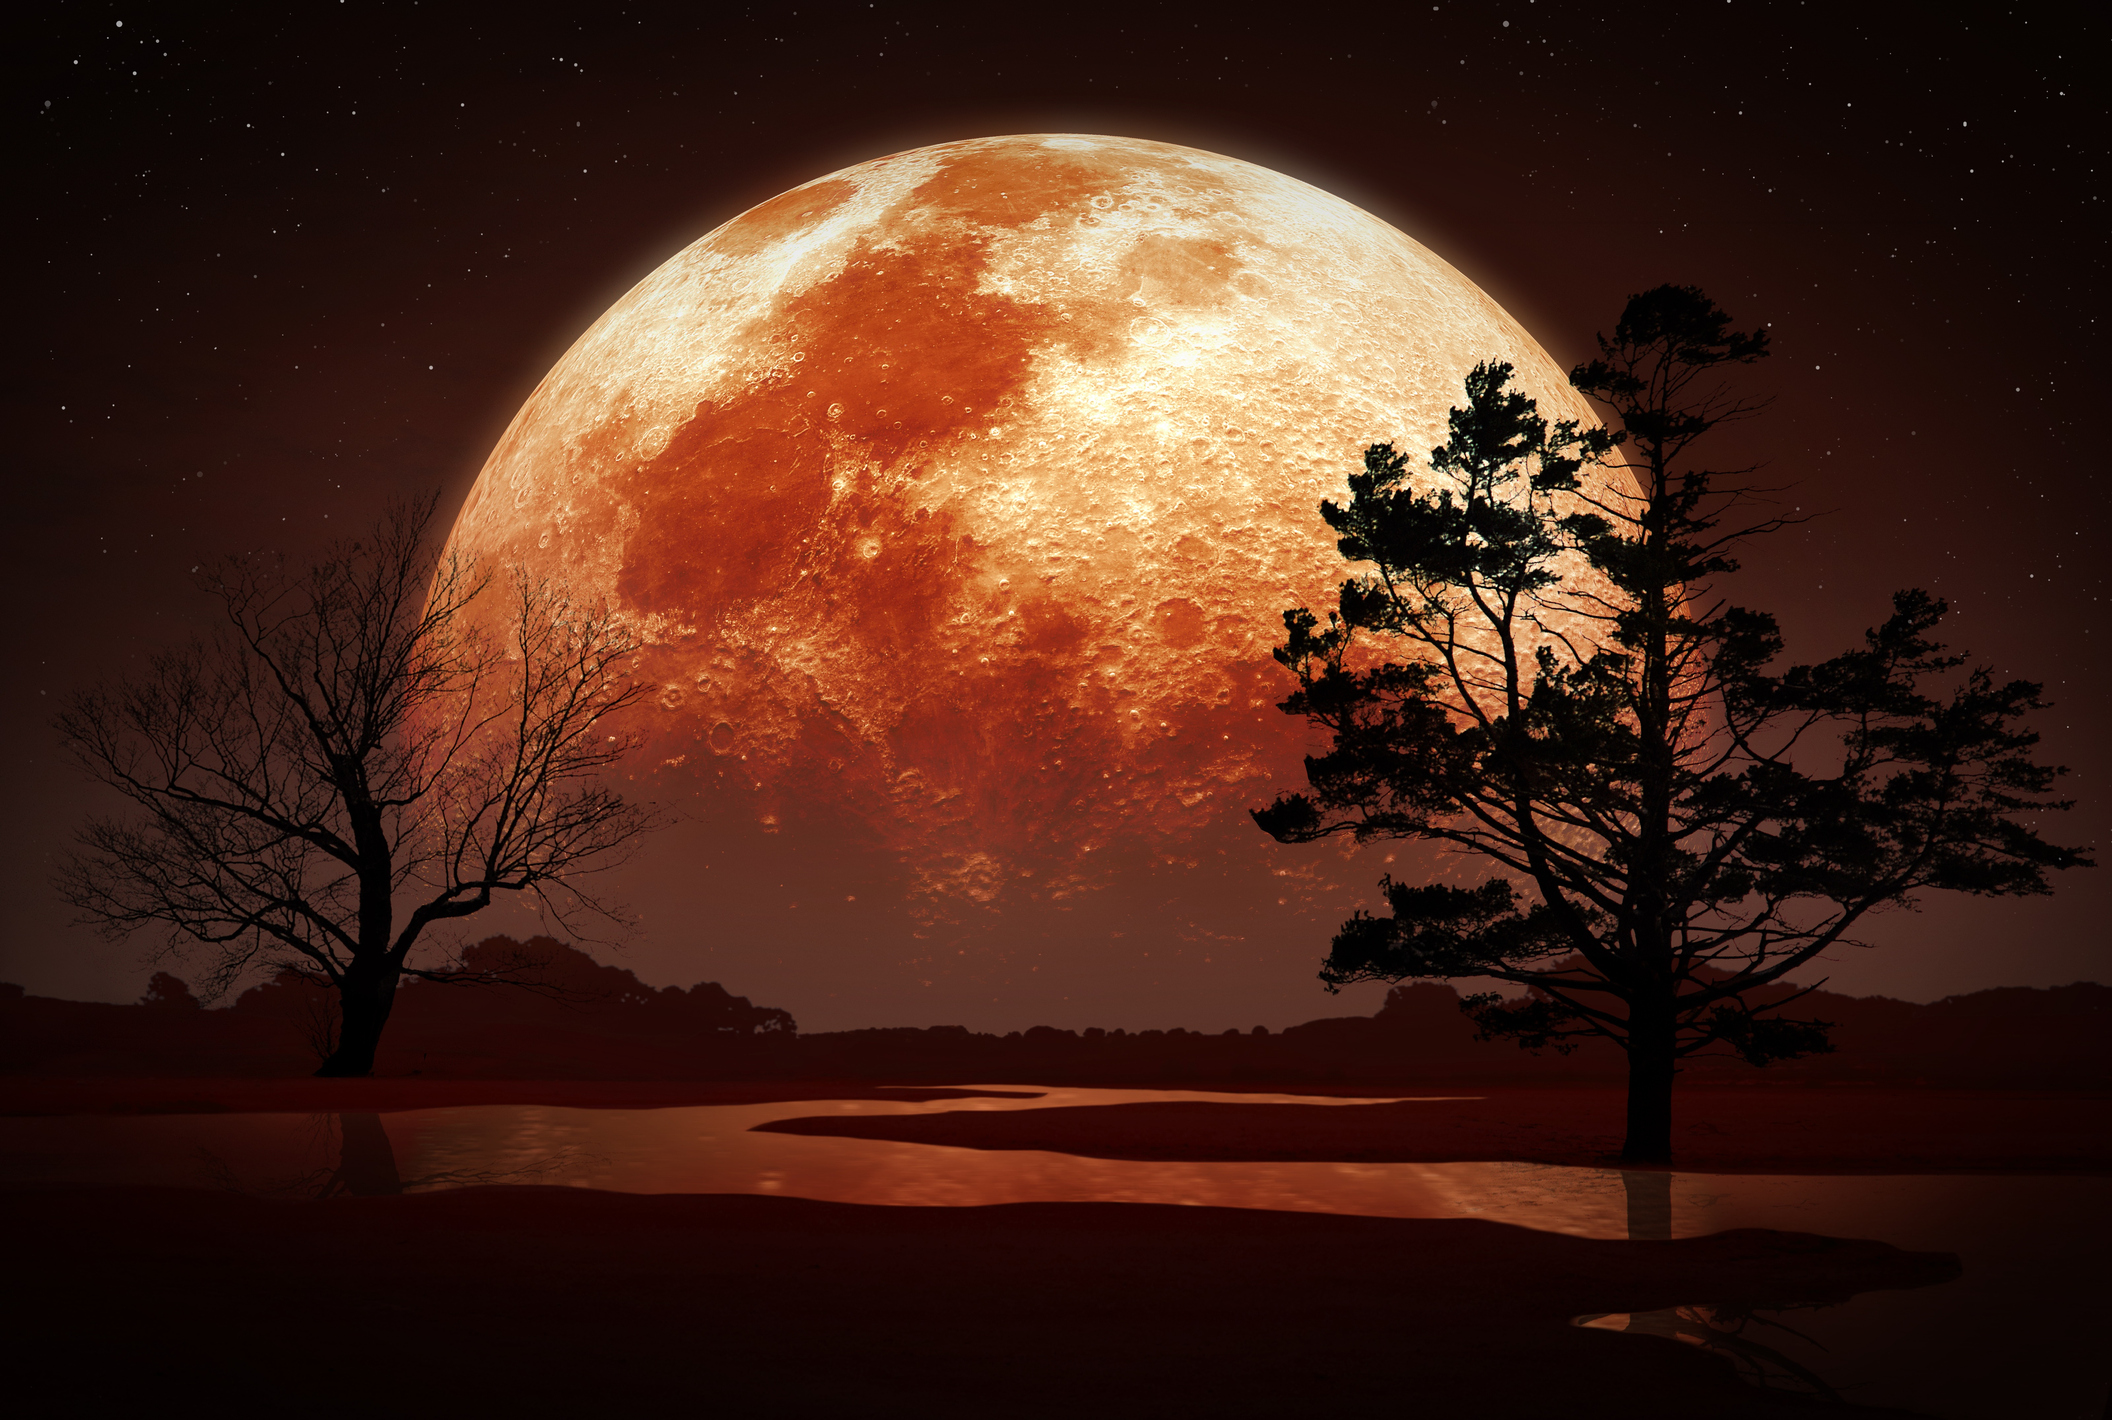 blood moon meaning pisces - photo #10